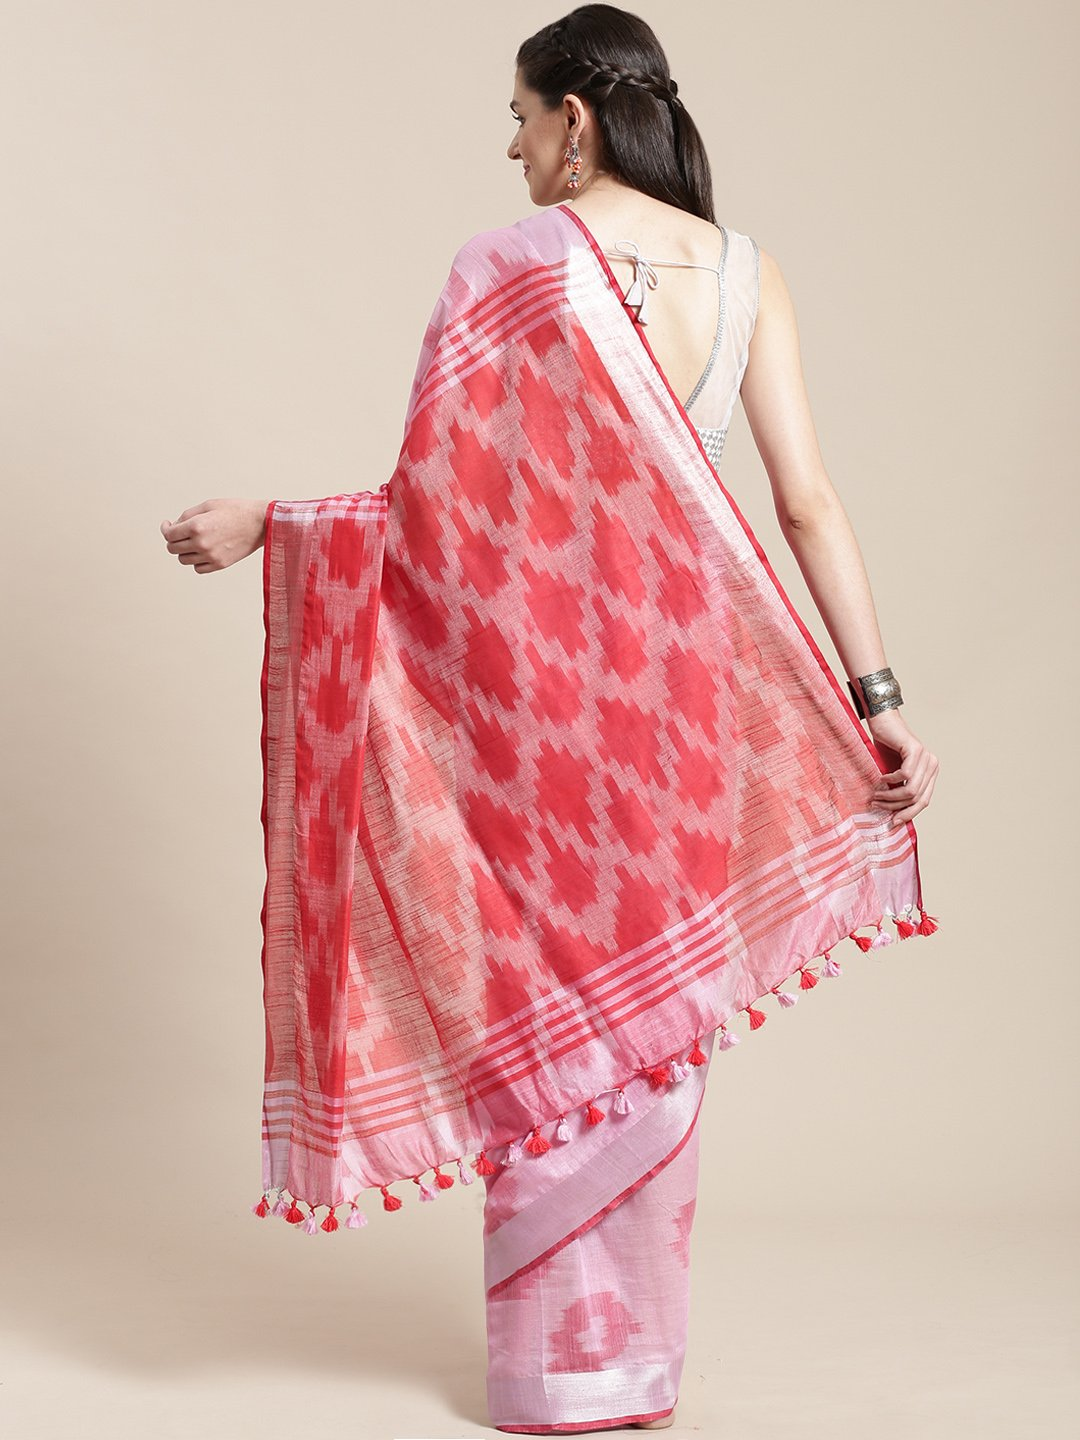 Linen Handwoven Saree and Blouse-Saree-Kalakari India-ALBGSA0030-Hand Woven, Linen, Sarees, Sustainable Fabrics, Traditional Weave-[Linen,Ethnic,wear,Fashionista,Handloom,Handicraft,Indigo,blockprint,block,print,Cotton,Chanderi,Blue, latest,classy,party,bollywood,trendy,summer,style,traditional,formal,elegant,unique,style,hand,block,print, dabu,booti,gift,present,glamorous,affordable,collectible,Sari,Saree,printed, holi, Diwali, birthday, anniversary, sustainable, organic, scarf, online, low pri